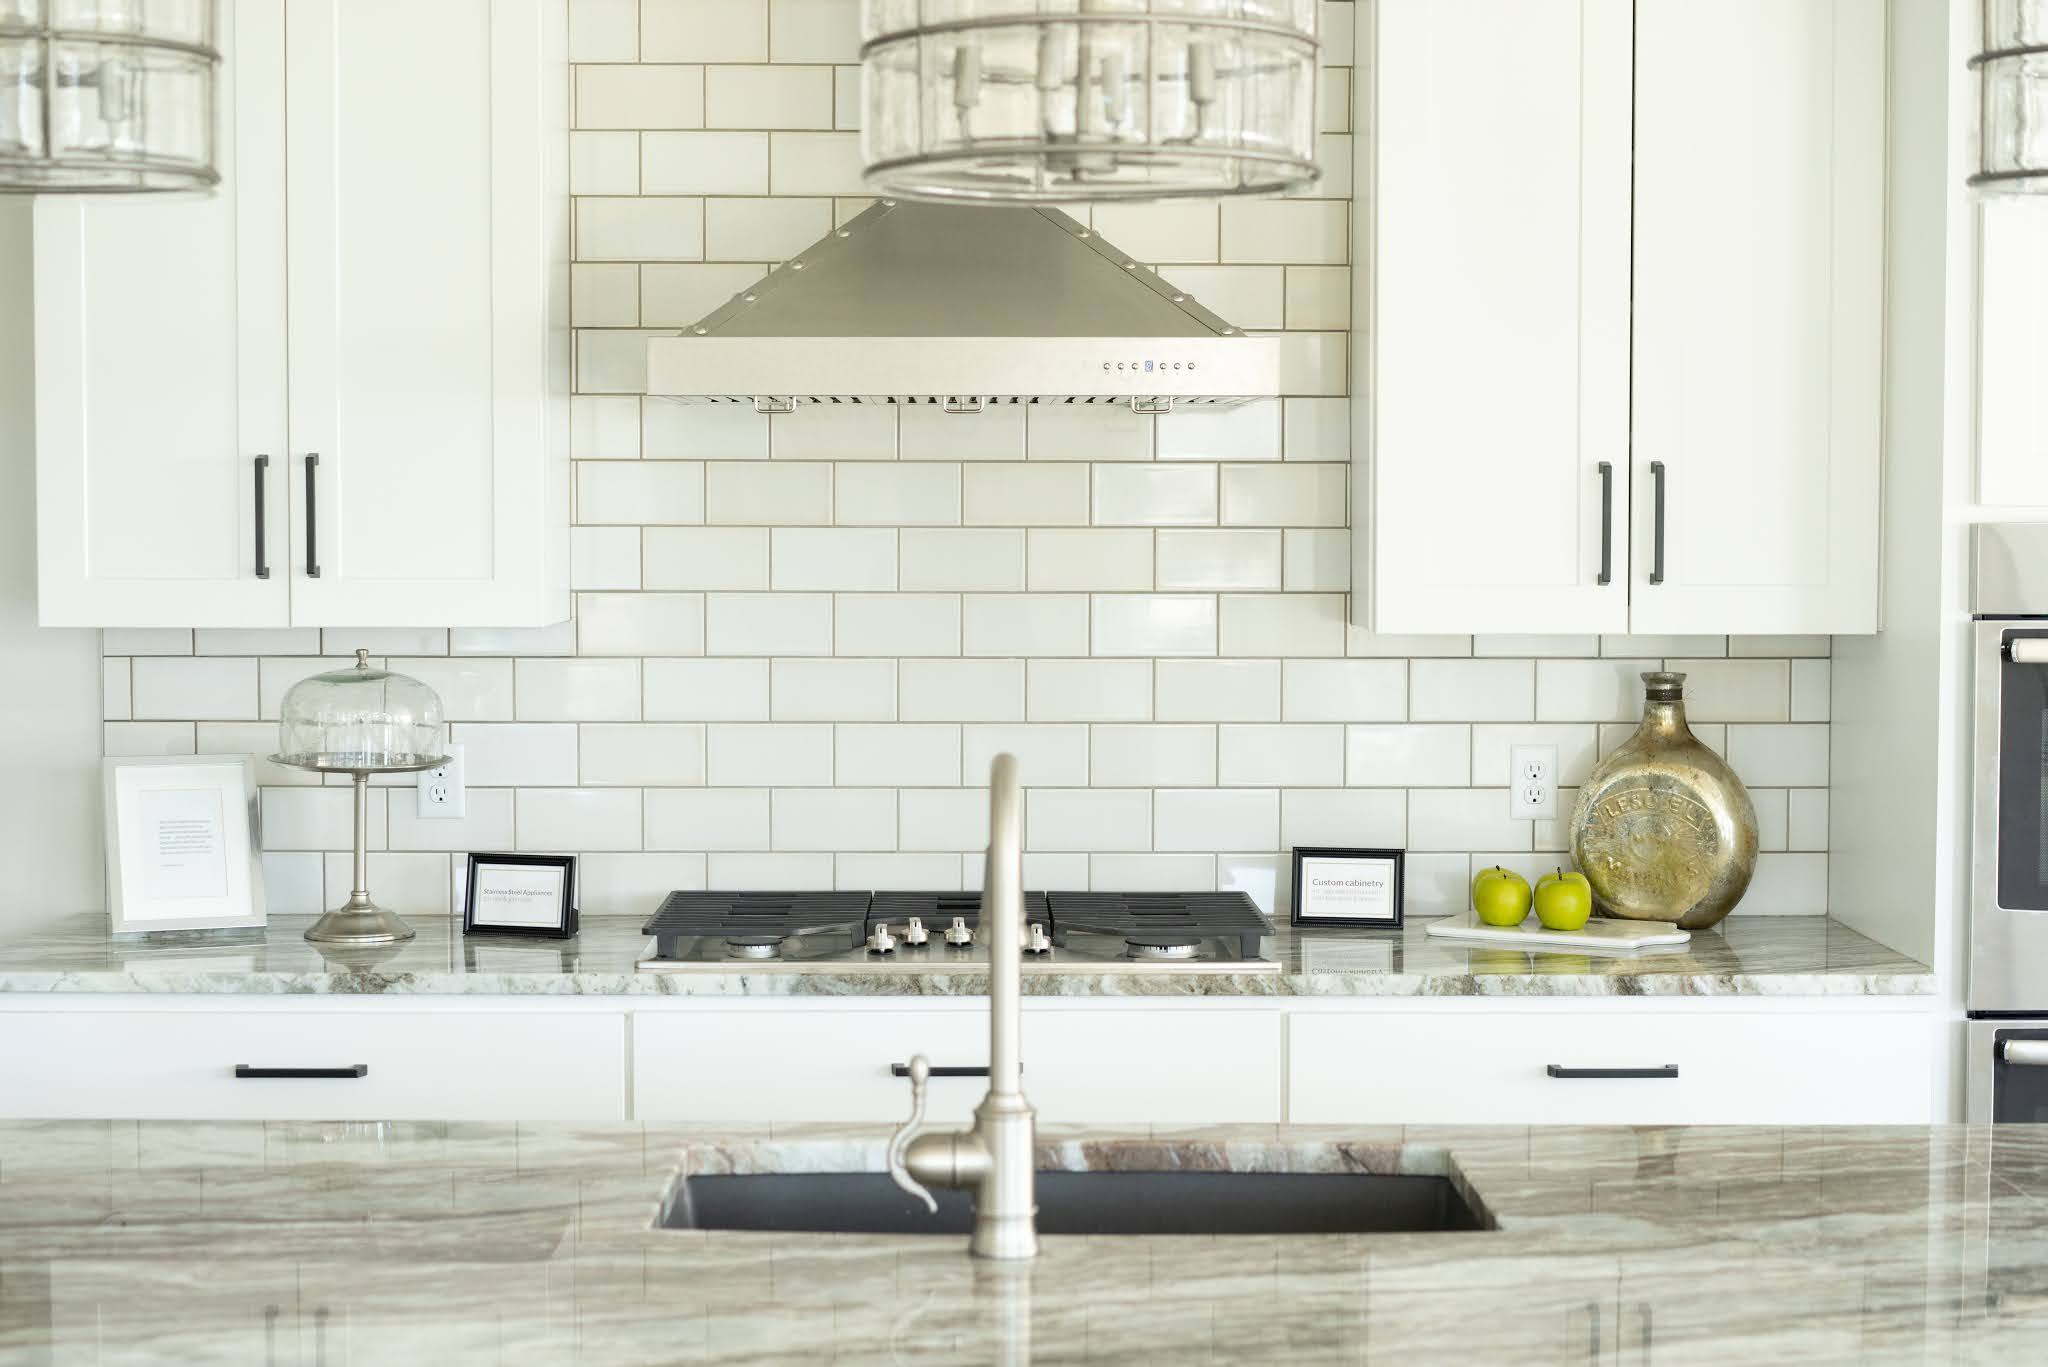 A tile backsplash is one way to add rhythm and repetition